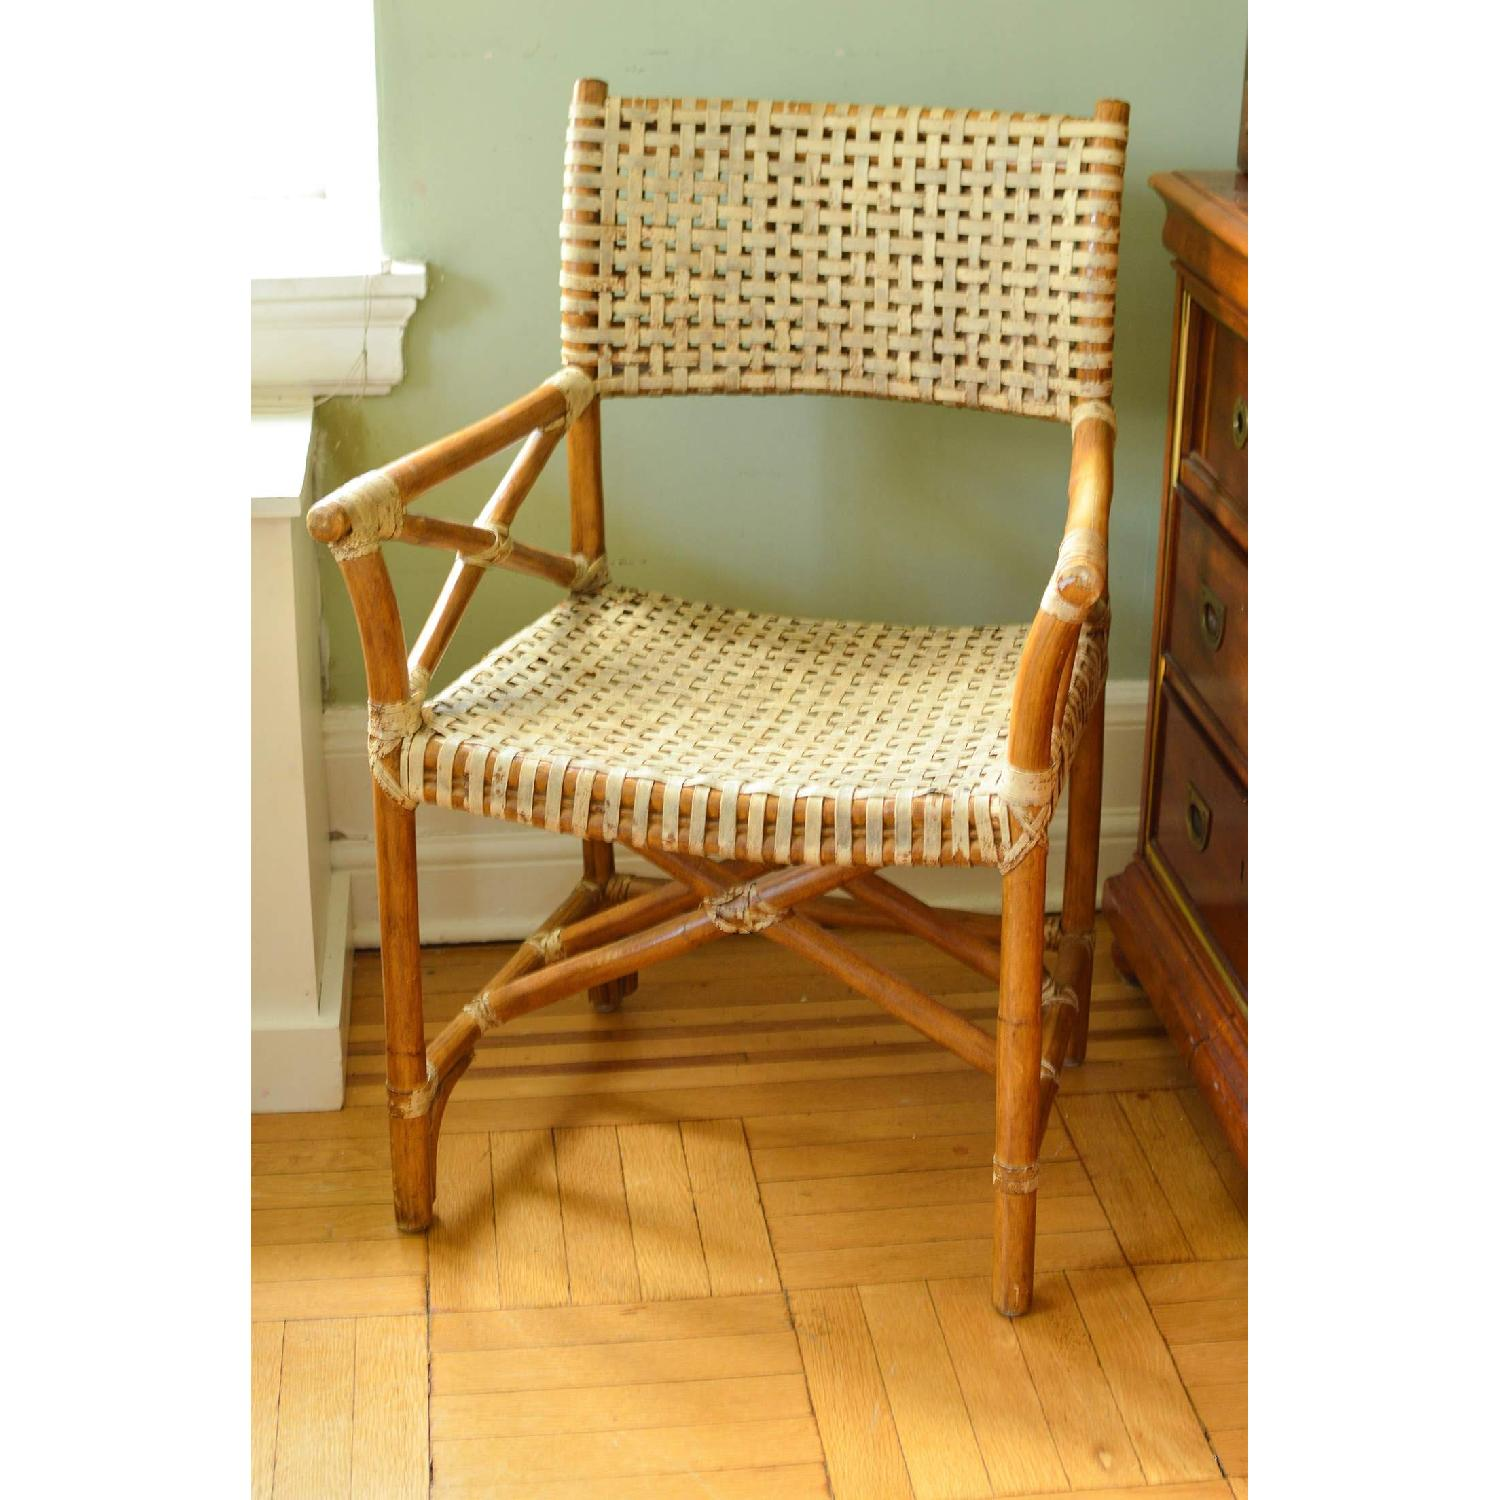 Vintage McGuire-esque Rawhide Bamboo Captains Chair - image-1